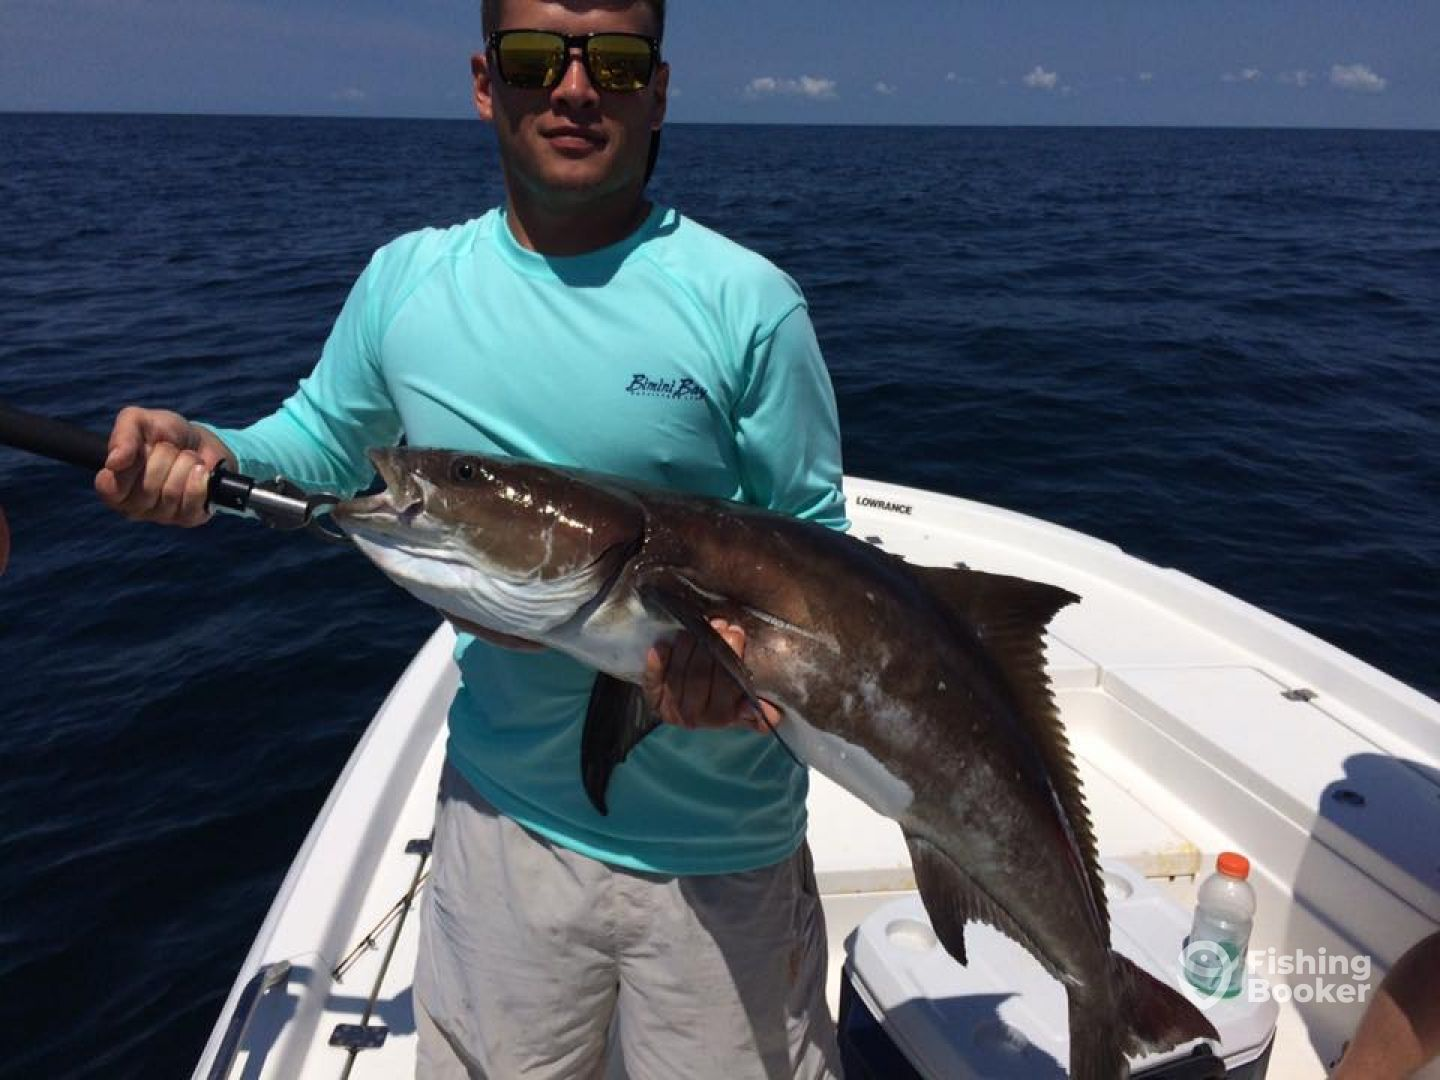 Latest fishing reports fishingbooker for Harkers island fishing report